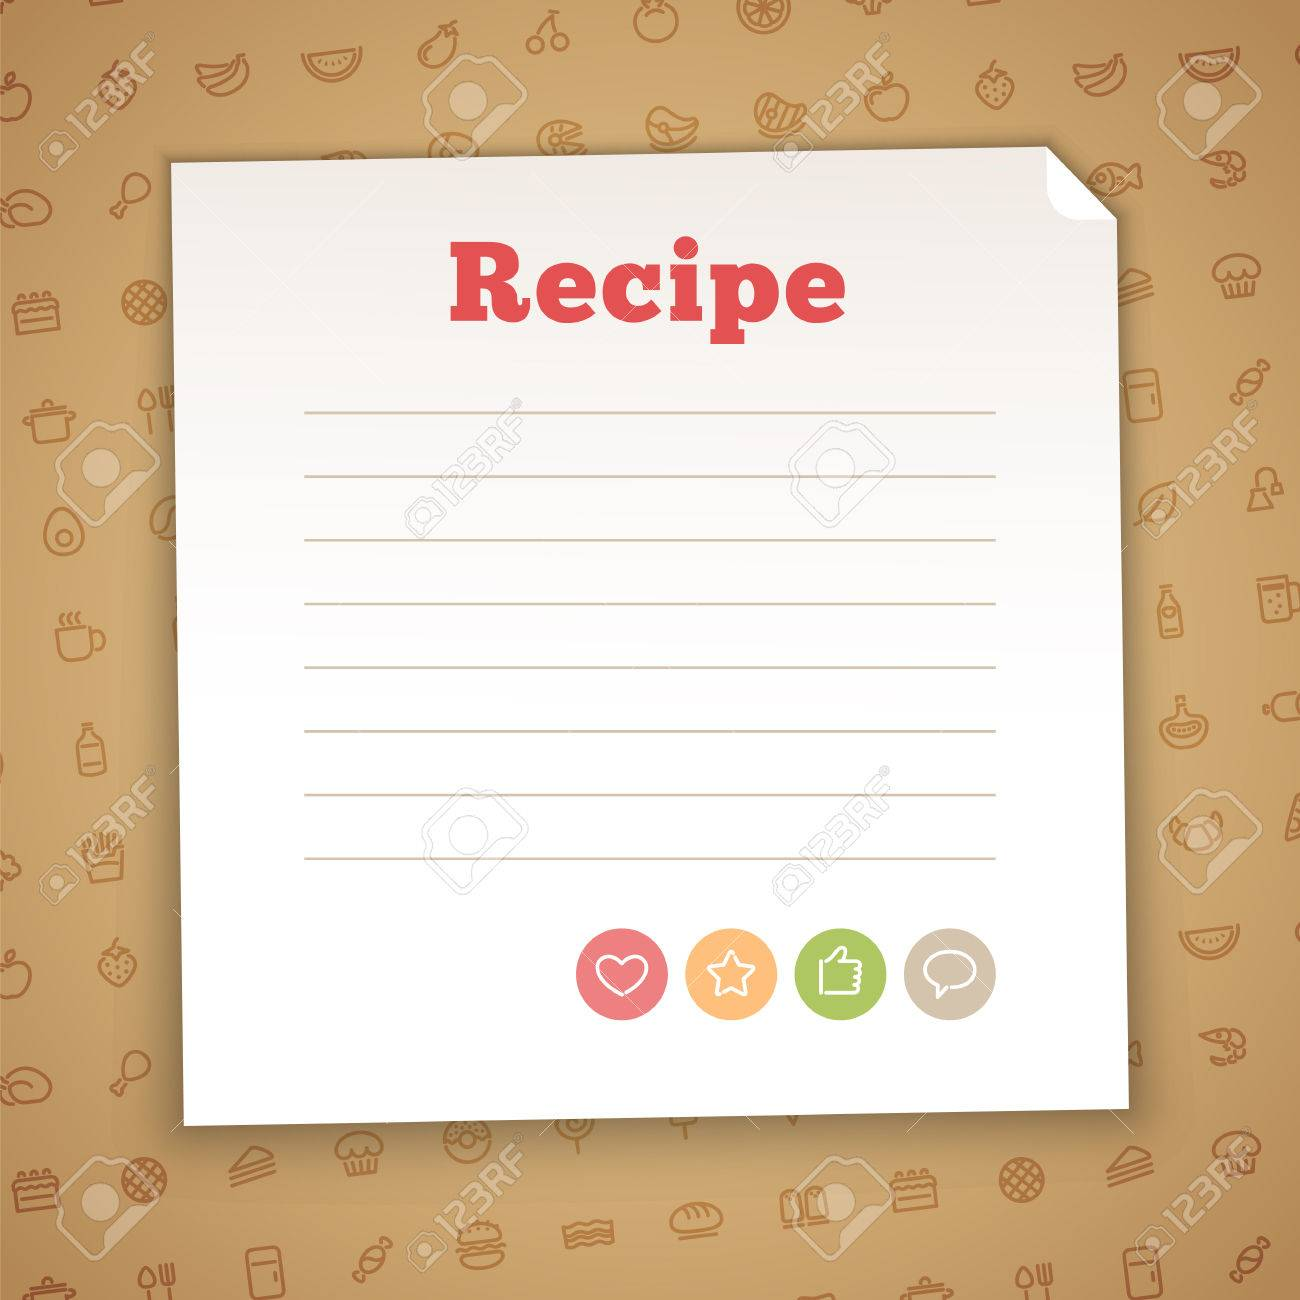 Blank Recipe Card Template Royalty Free Cliparts, Vectors, And Stock ...